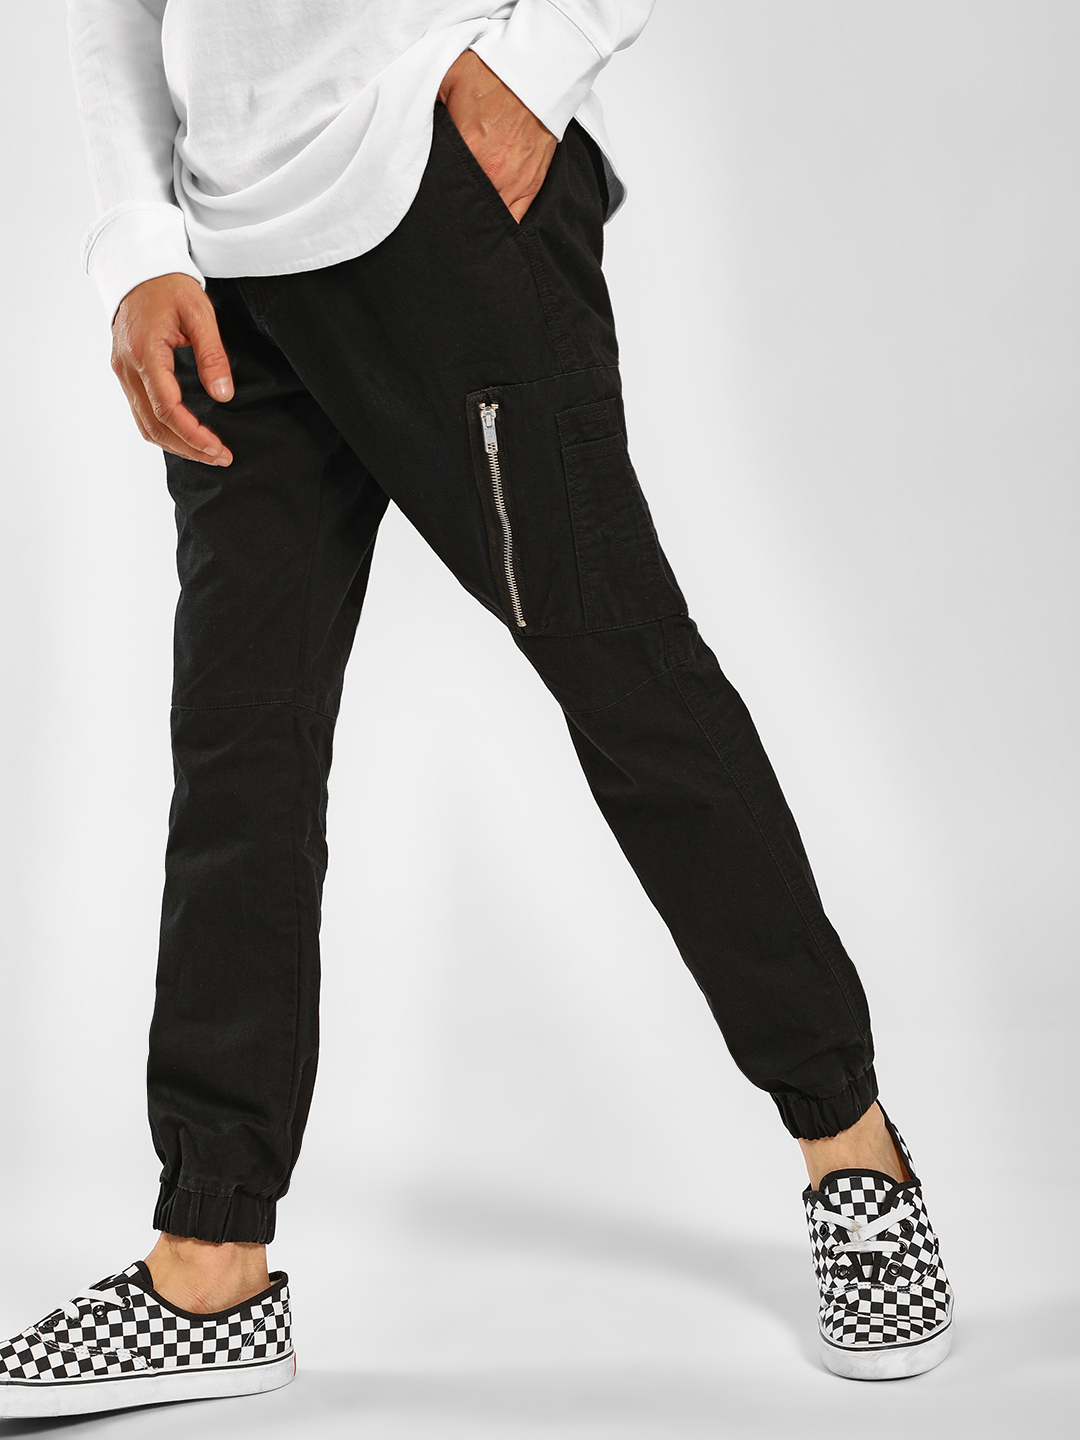 SKULT By Shahid Kapoor Black Zipper Detail Joggers 1